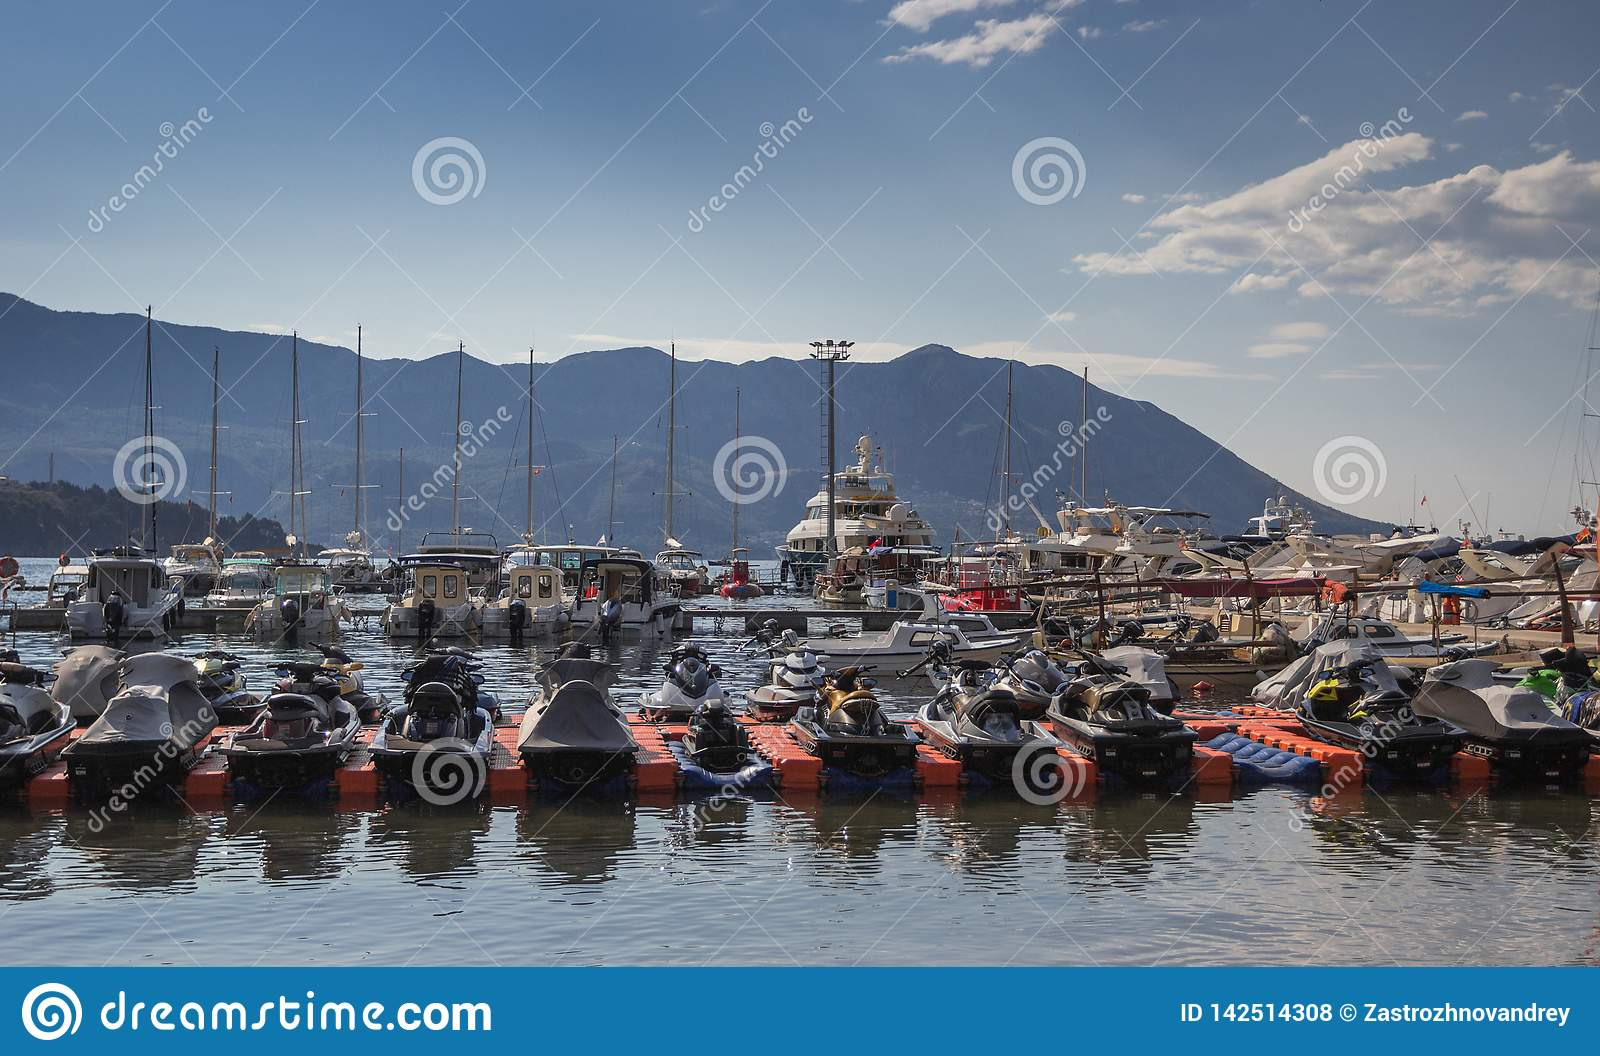 Berth with standing yachts and jet skis on a background of mountains